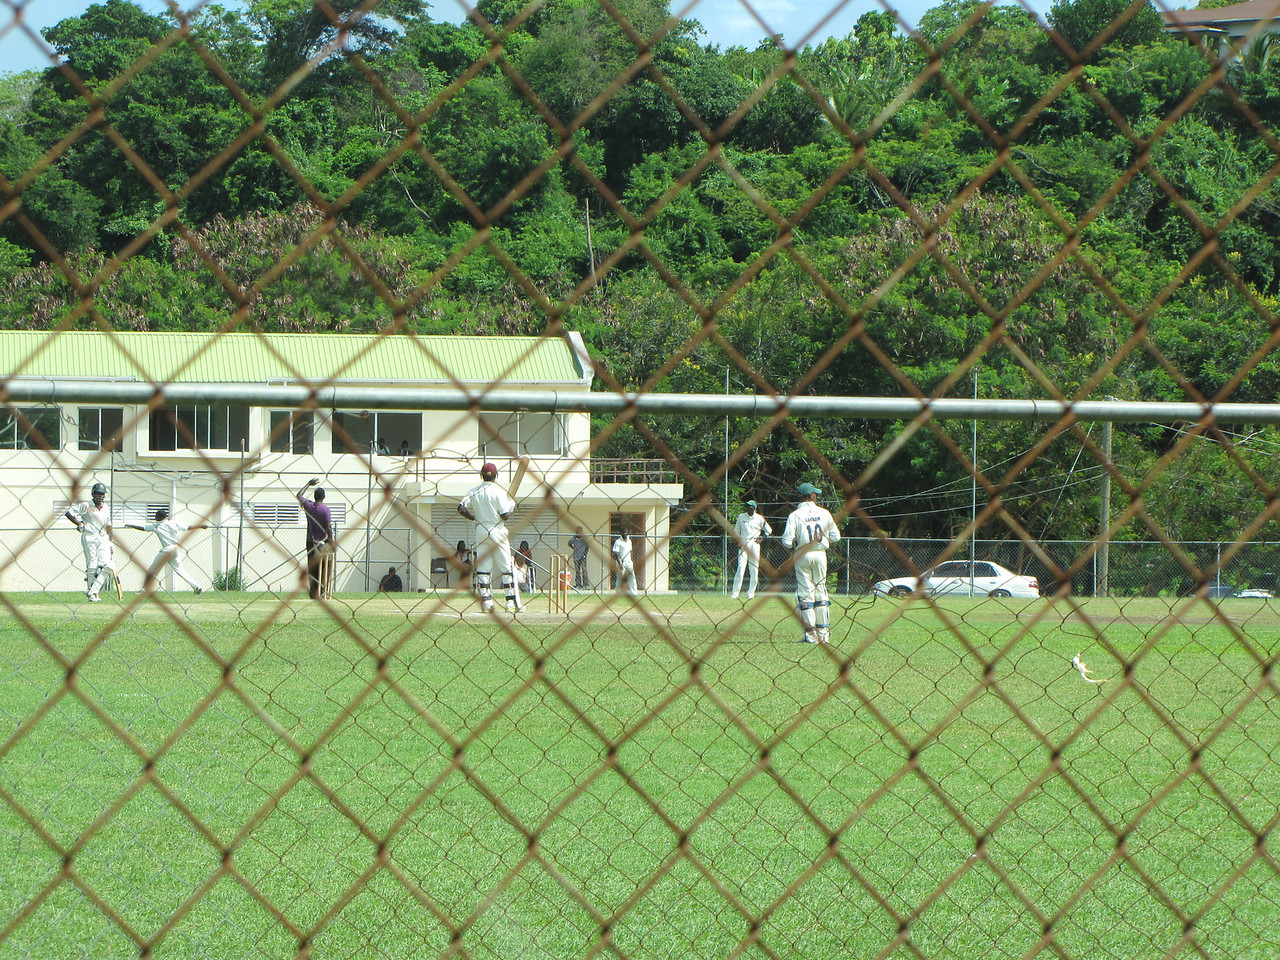 We pass a cricket match on the way back to St. George's.